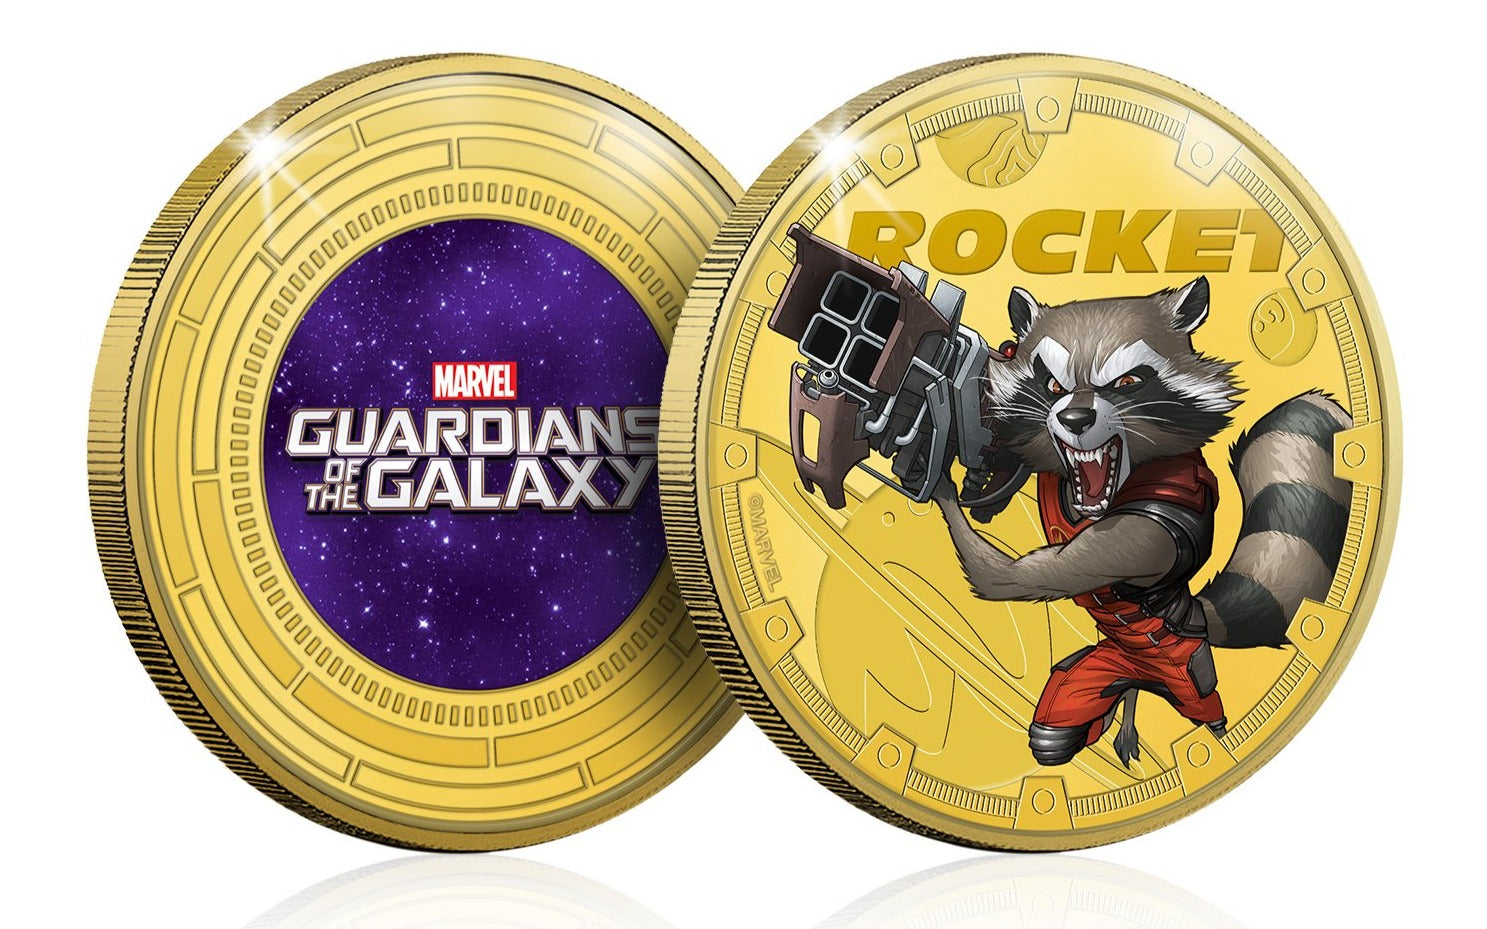 Marvel Guardianes de la Galaxia - Rocket - Moneda / Medalla conmemorativa acuñada con baño en Oro 24 quilates y coloreada a 4 colores - 44mm